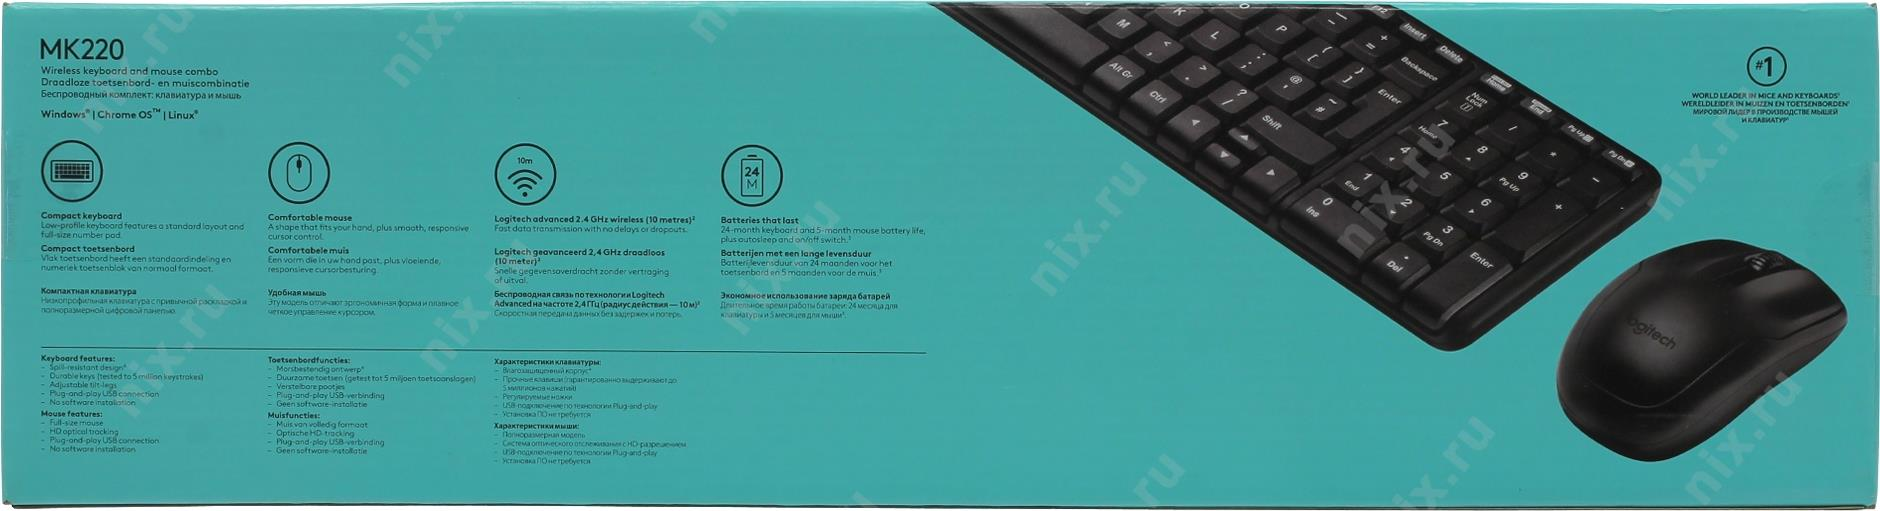 Info Harga Logitech Keyboard Plus Mouse Mk220 Wireles Update Wireless Combo Mk345 Garansi Resmi